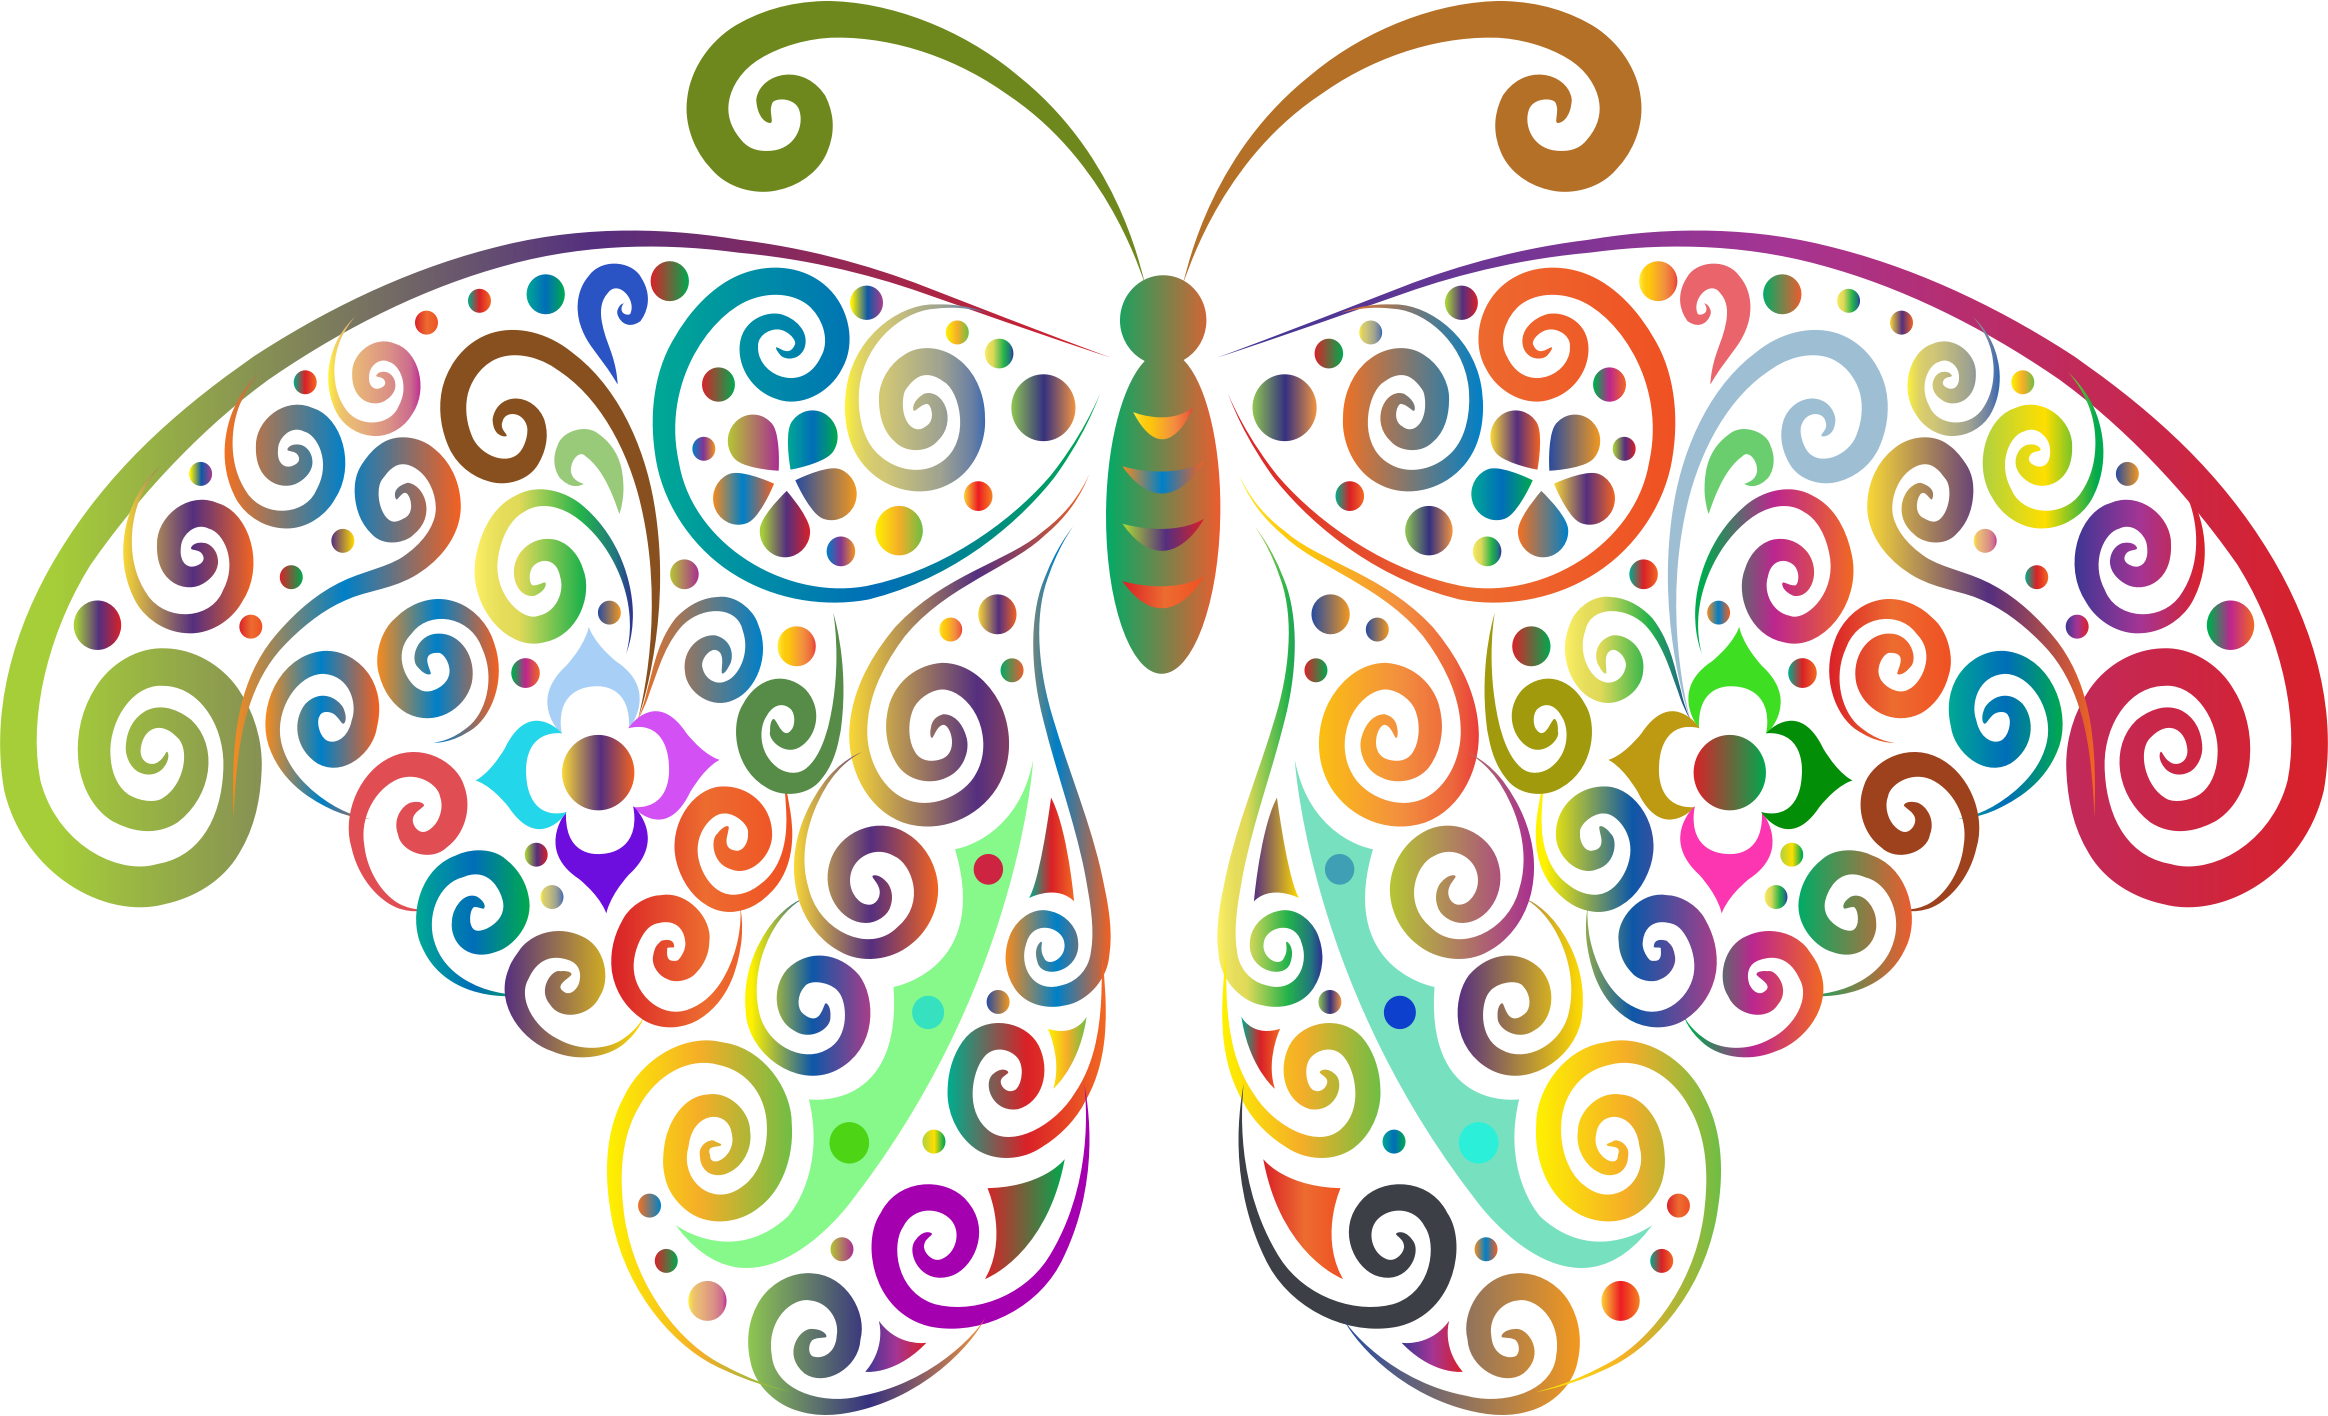 Prismatic Floral Flourish Butterfly Silhouette 2 No Background by GDJ